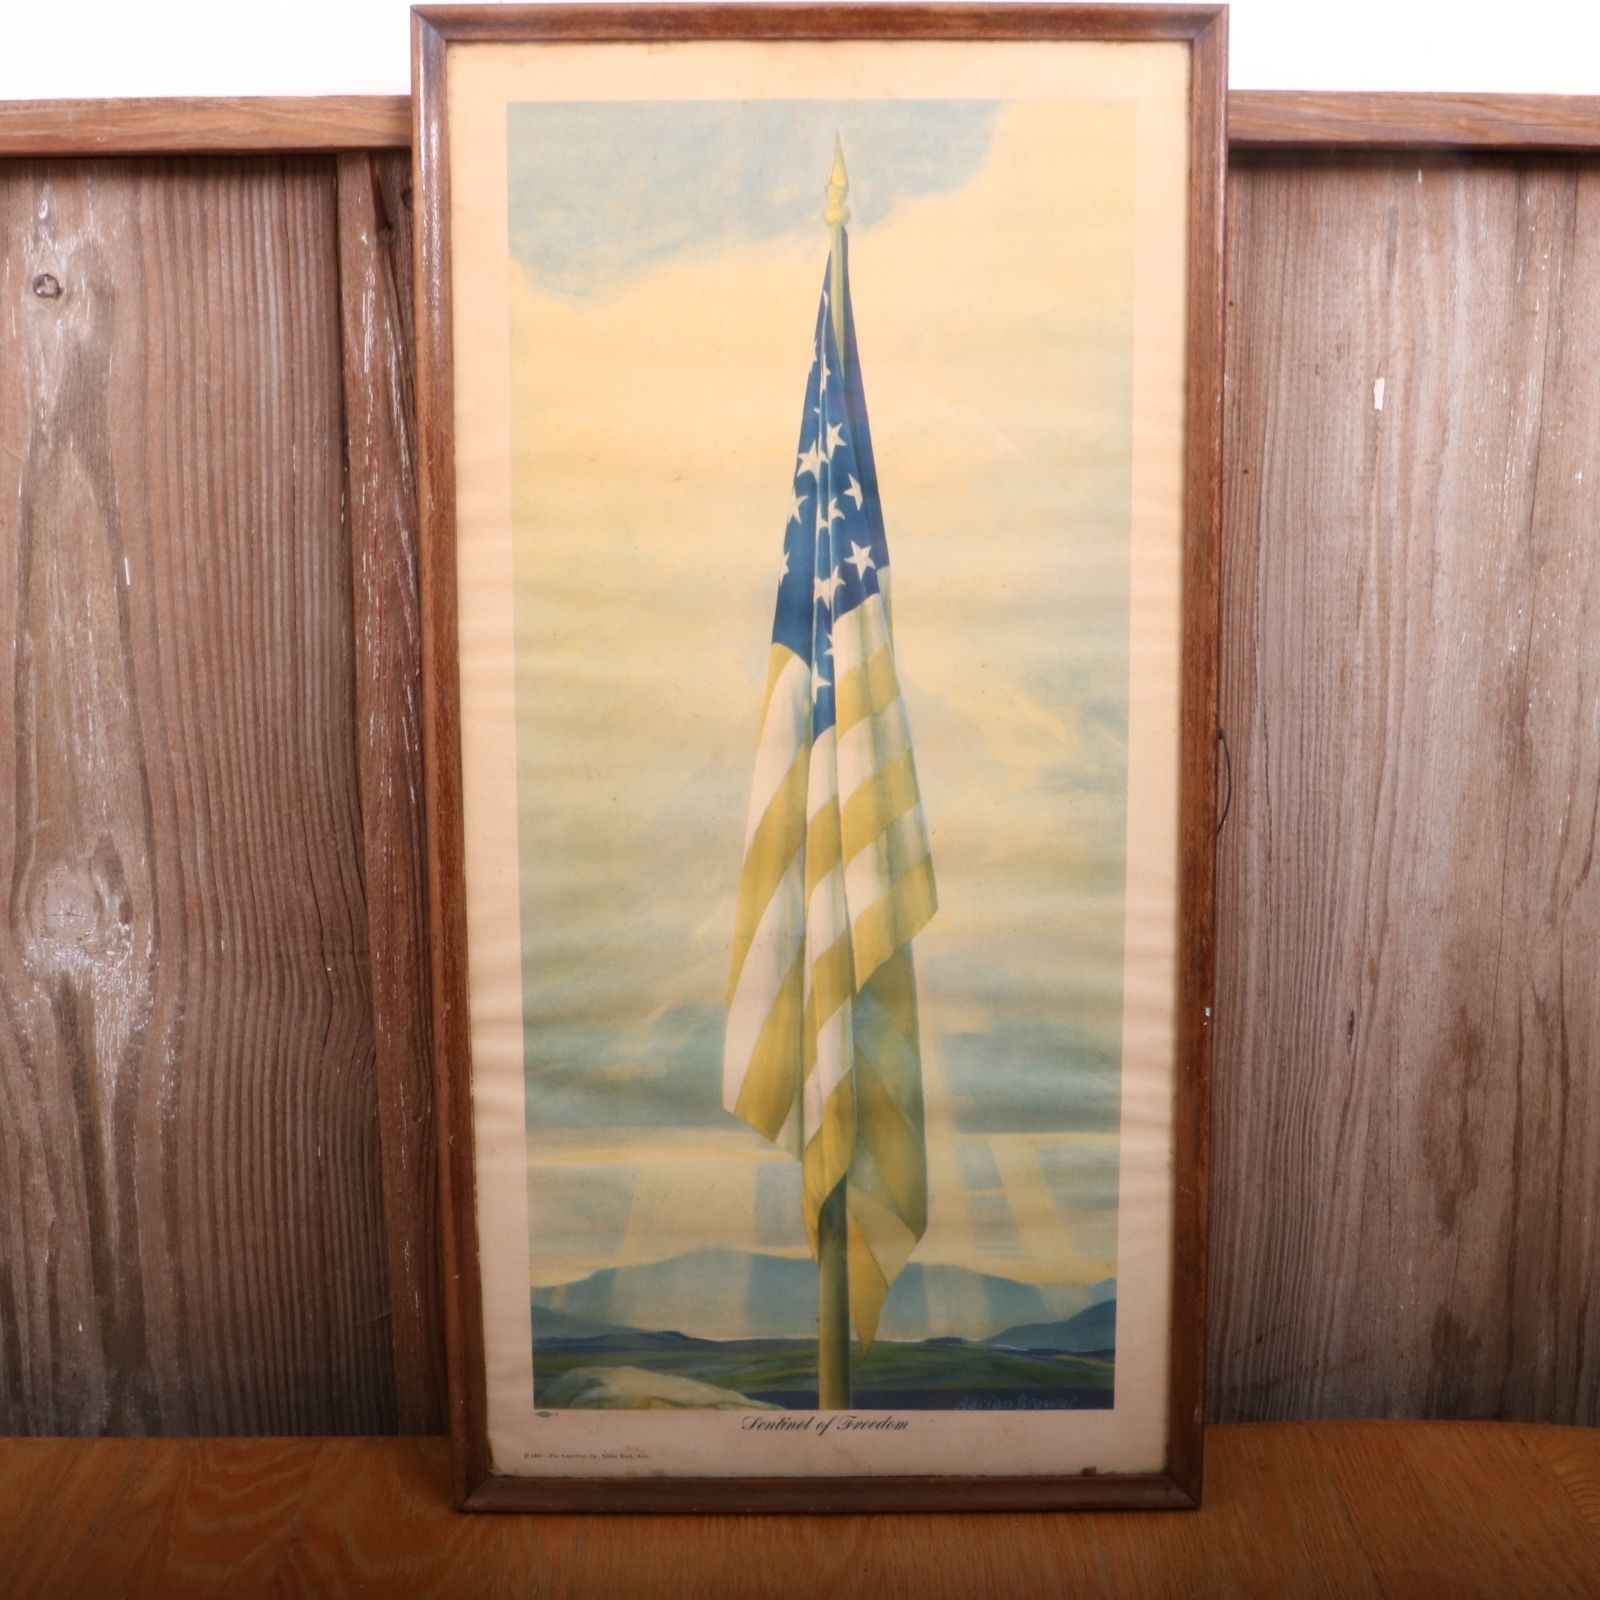 Vintage 1941 Sentinel of Freedom Framed American Flag Print Adrian Brewer